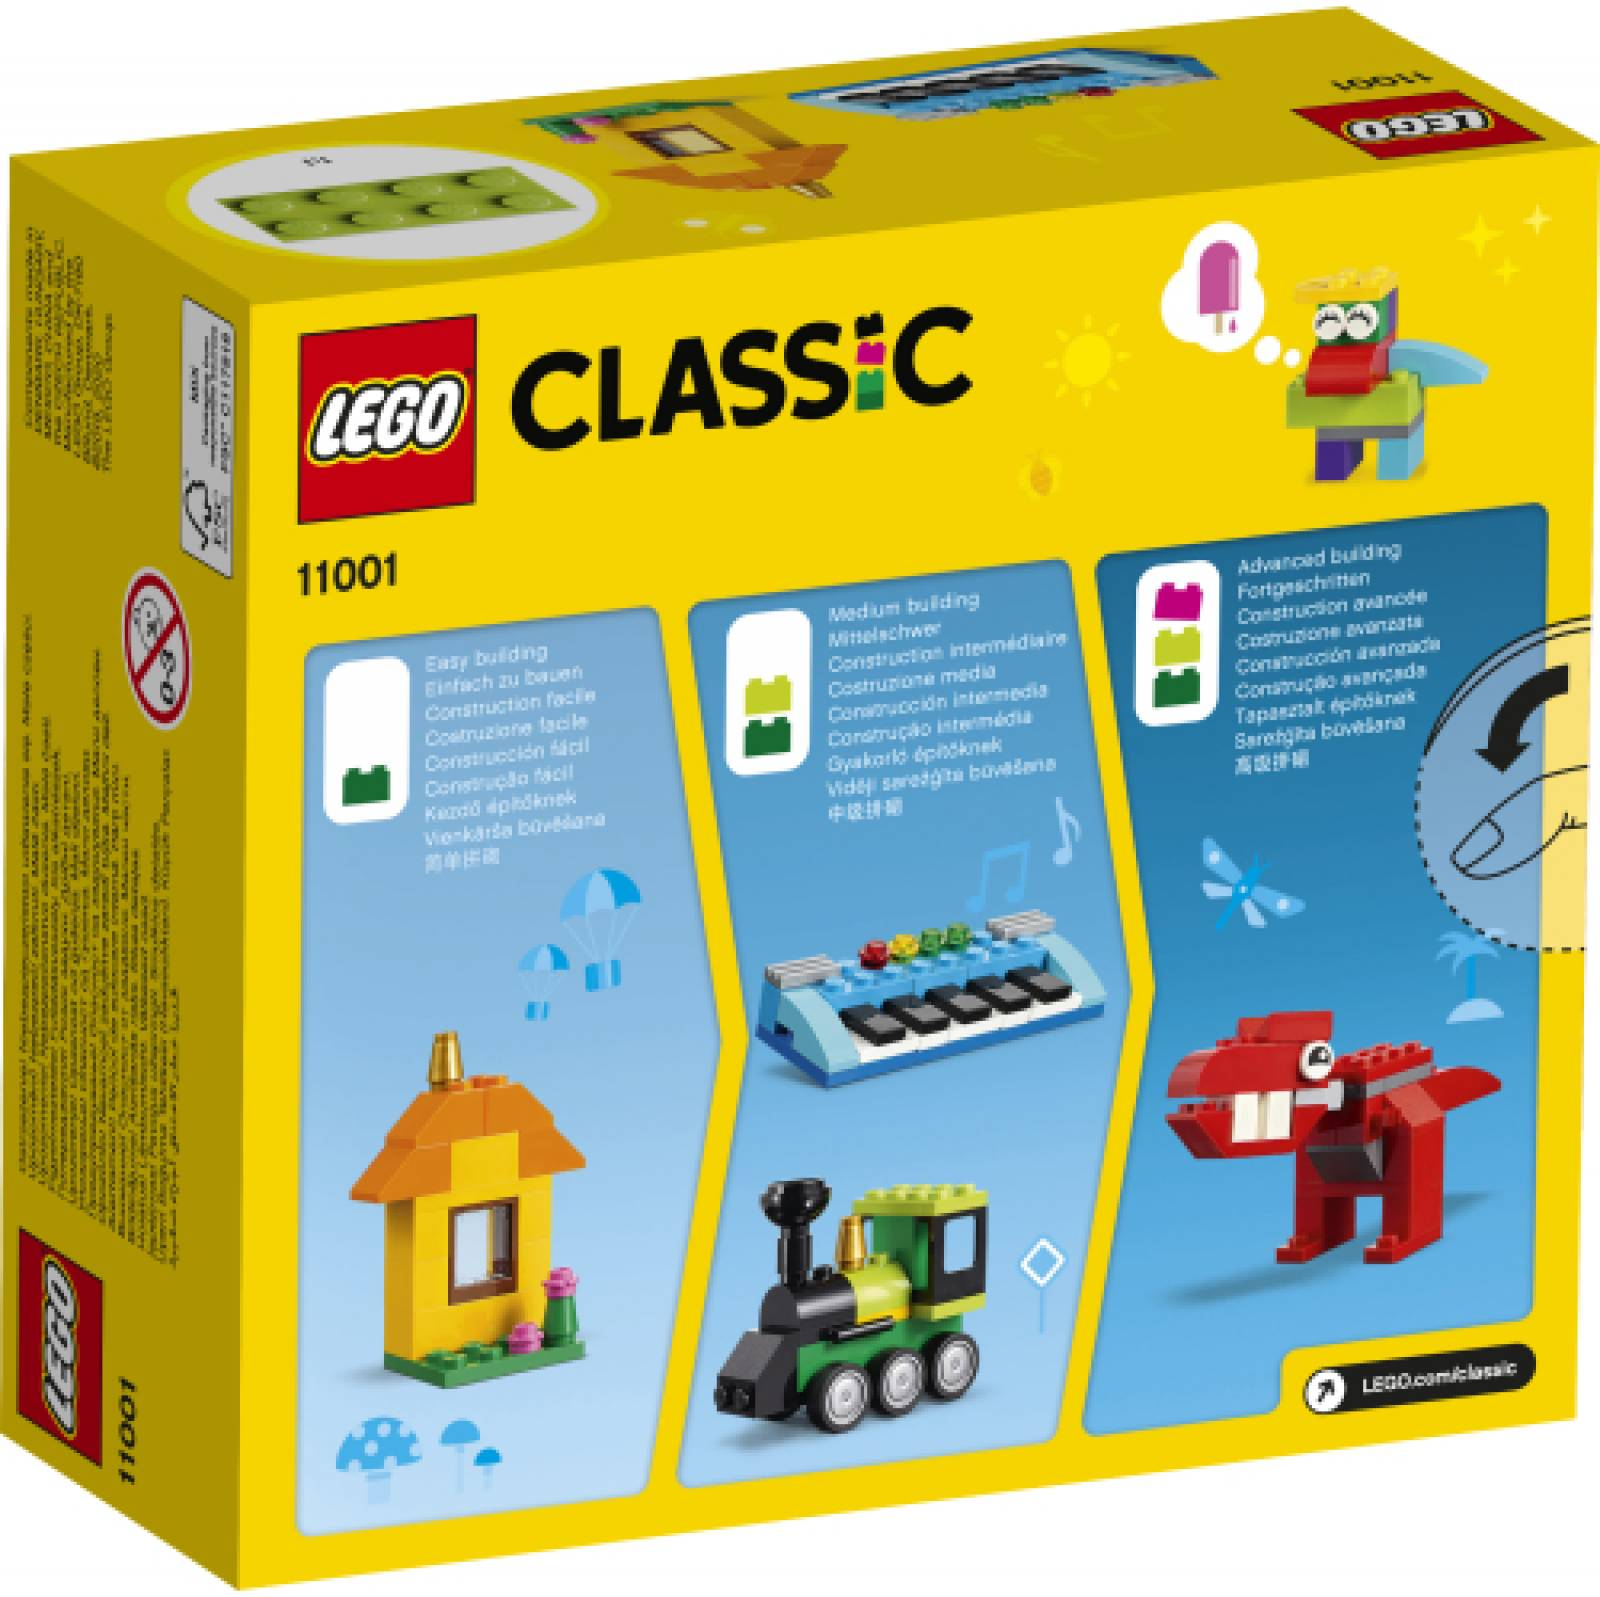 LEGO Classic Bricks & Ideas 11001 thumbnails